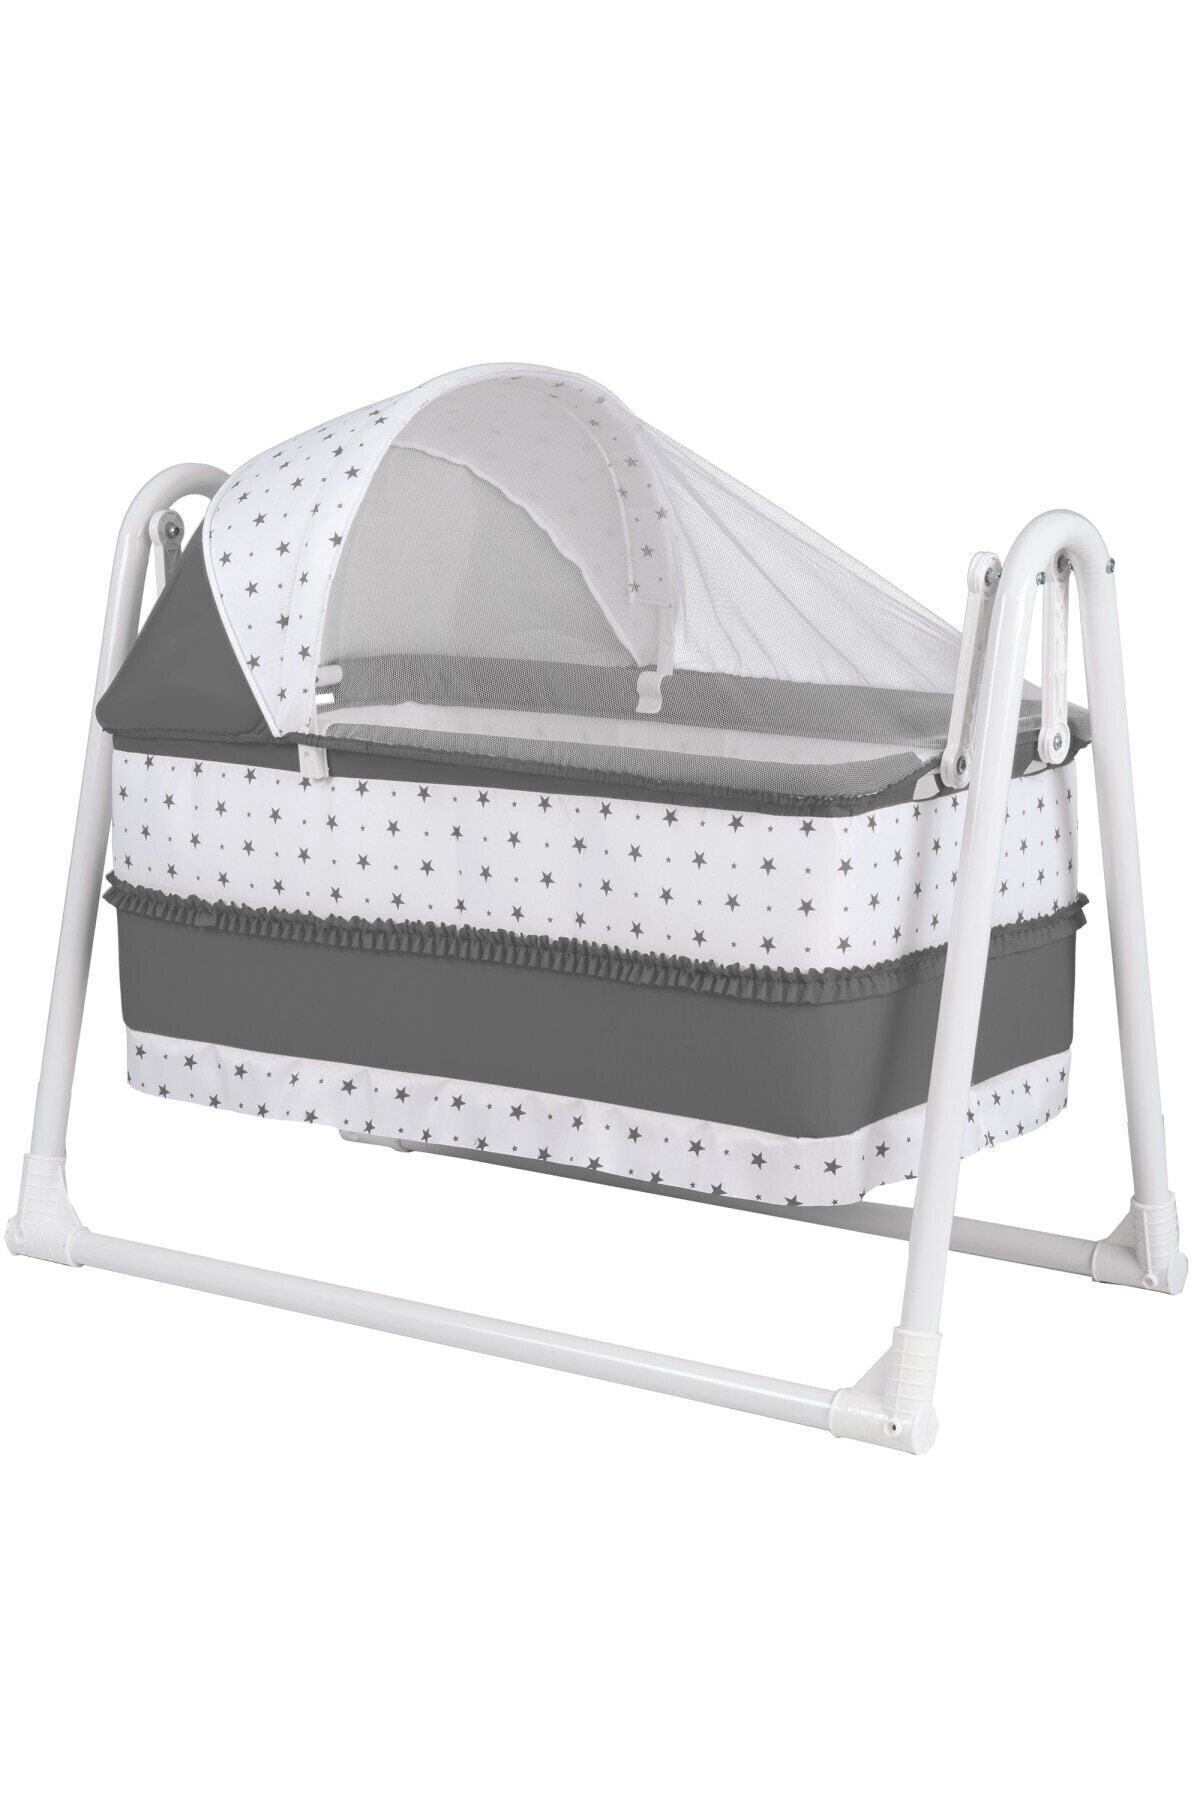 Portable Baby Crib Child Bed Jumper Cradle Swing Mini Cradle Hammock Small Basket Mother Side Furniture Turkey